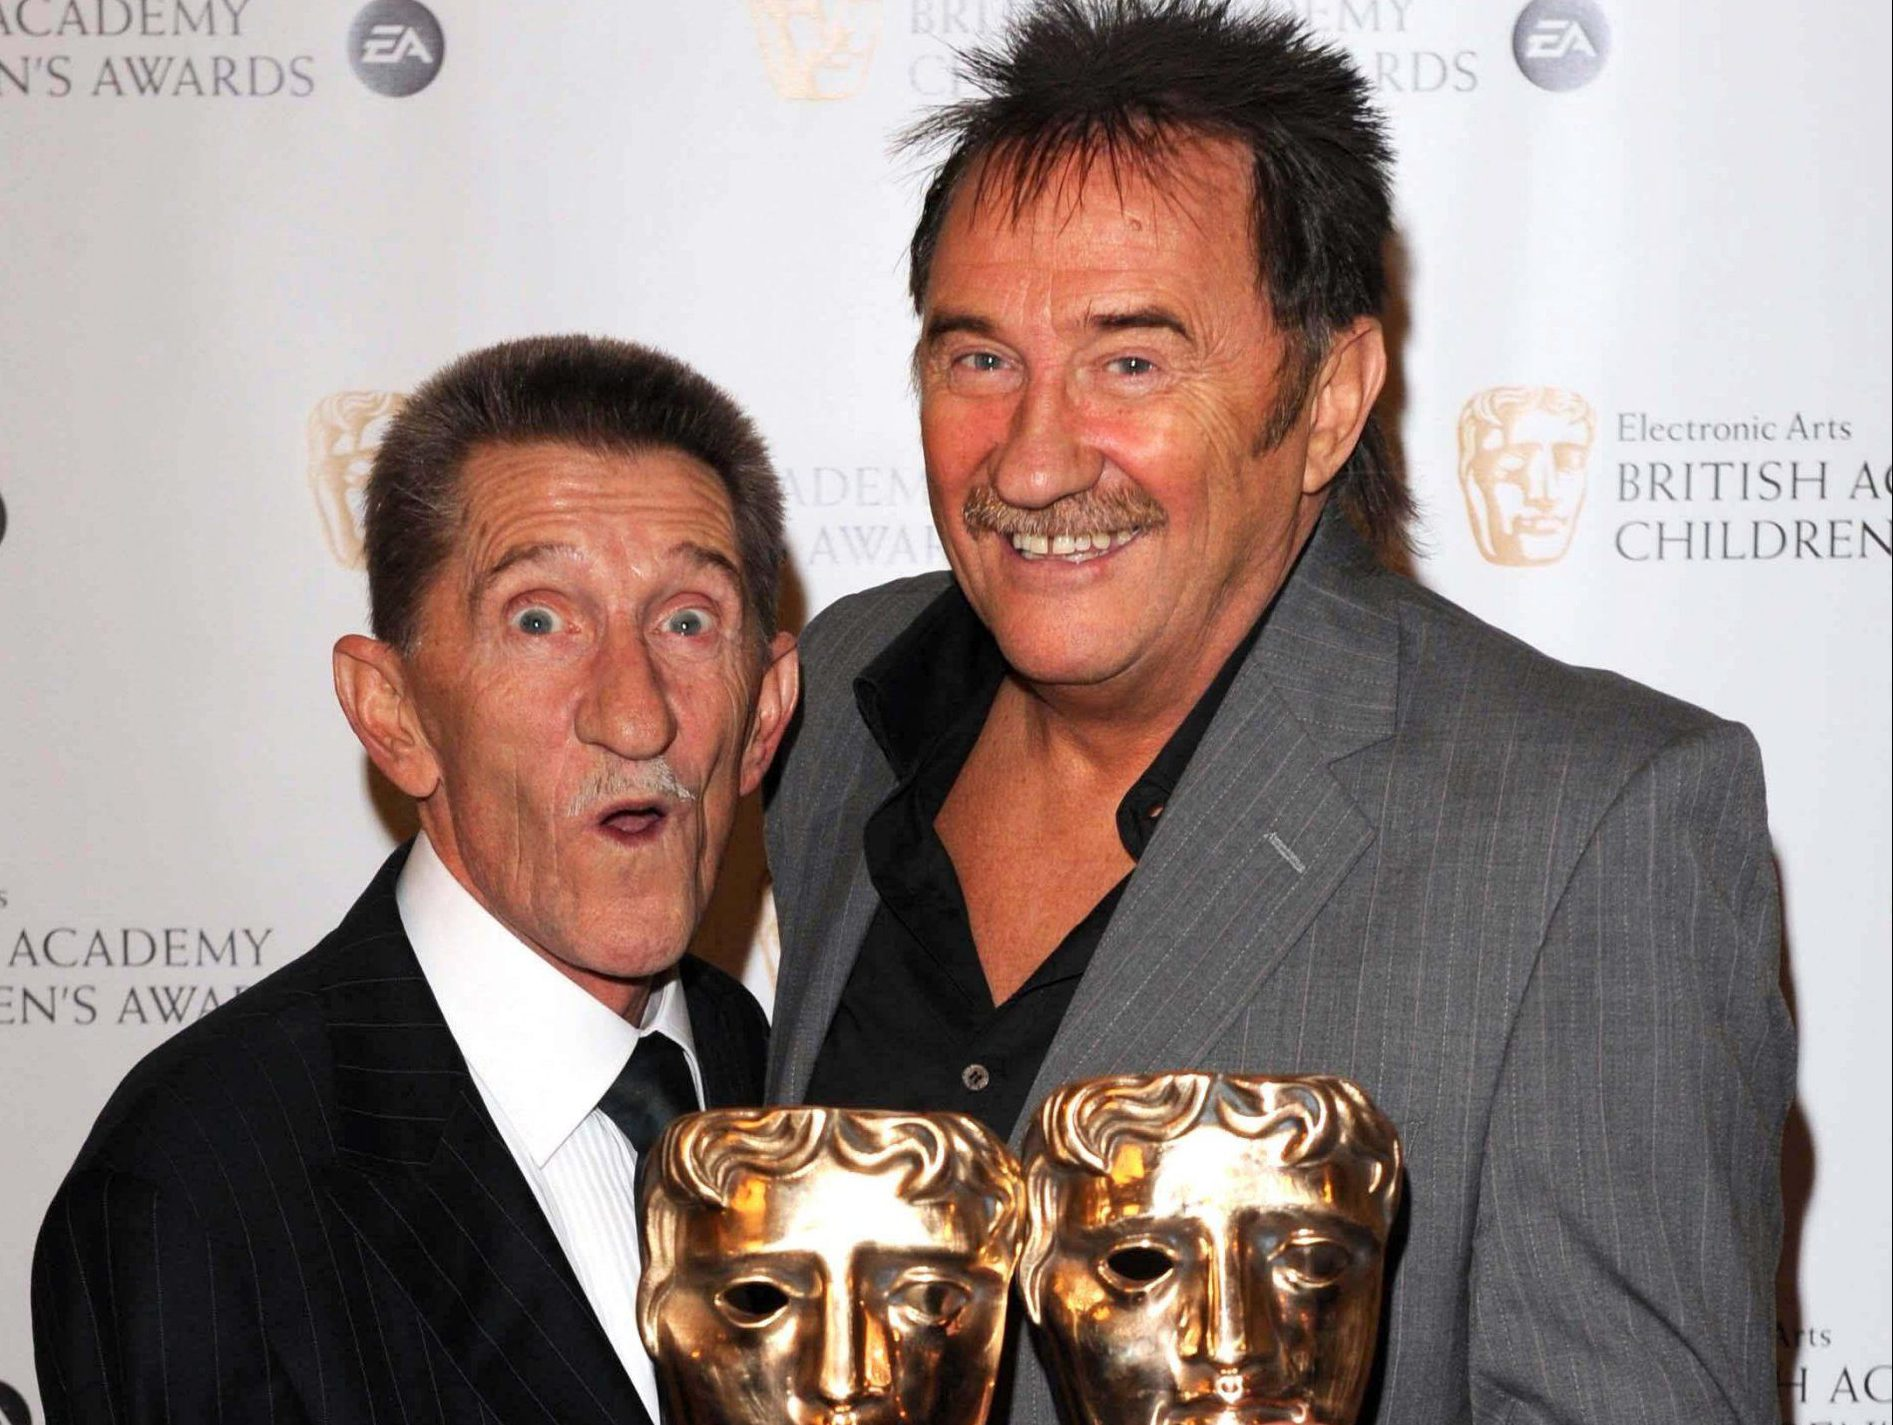 File photo dated 30/11/2008 of the Chuckle Brothers, Barry (left) and Paul Elliott with the Special Award at the EA BAFTA Kids Awards at the Hilton Hotel in London, the veteran entertainer Barry Chuckle has died at the age of 73, his manager said. PRESS ASSOCIATION Photo. Issue date: Sunday August 5, 2018. See PA story DEATH Chuckle. Photo credit should read: Ian West/PA Wire